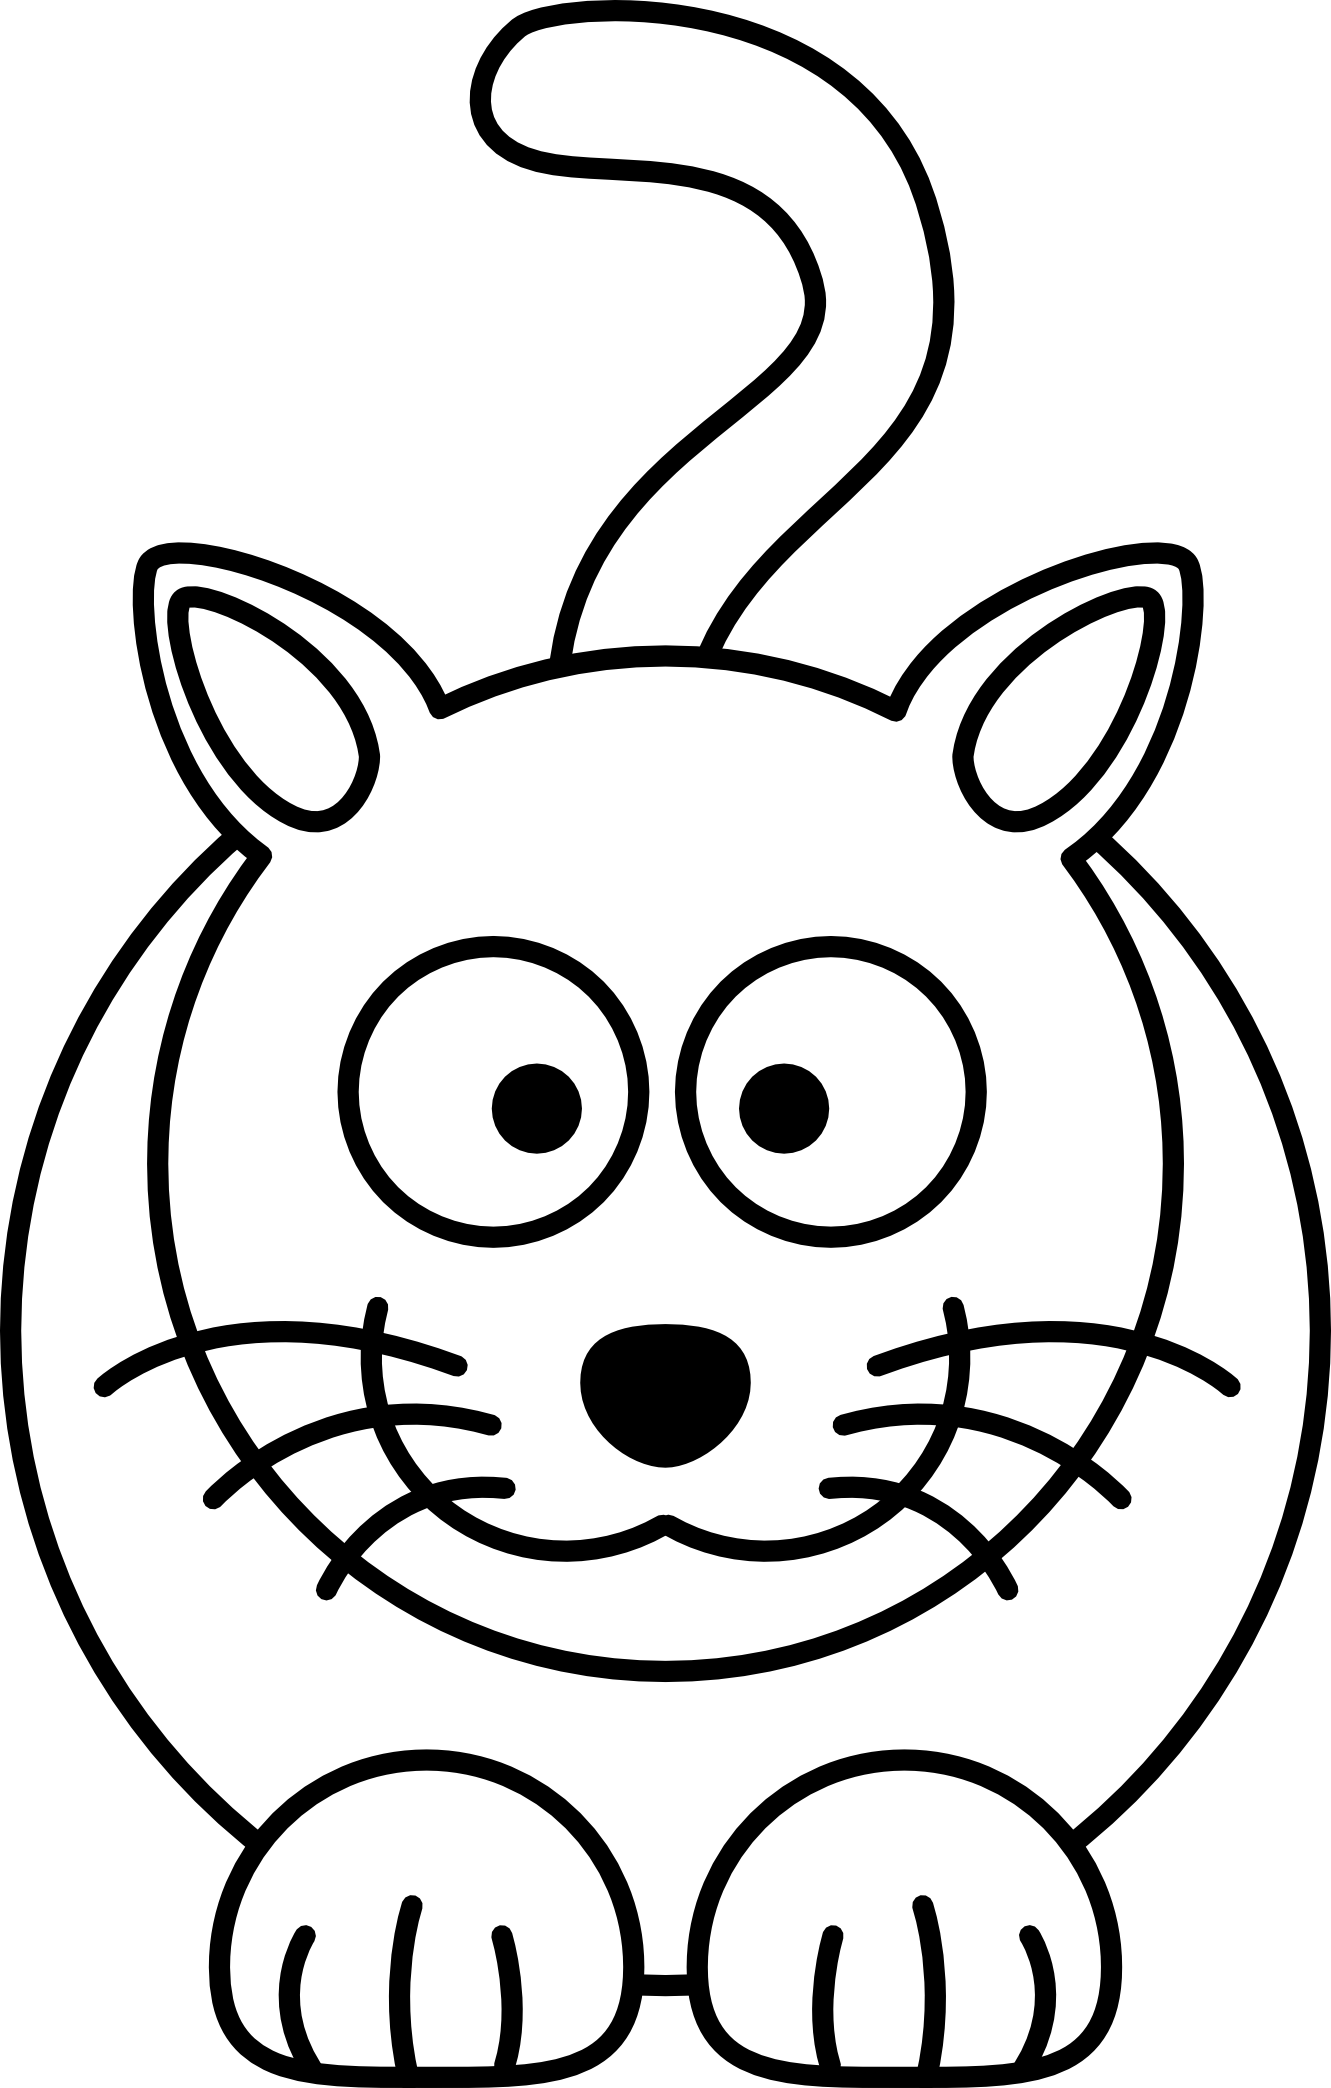 Line Drawing For Kids : How to draw cartoon animals for kids clipart best